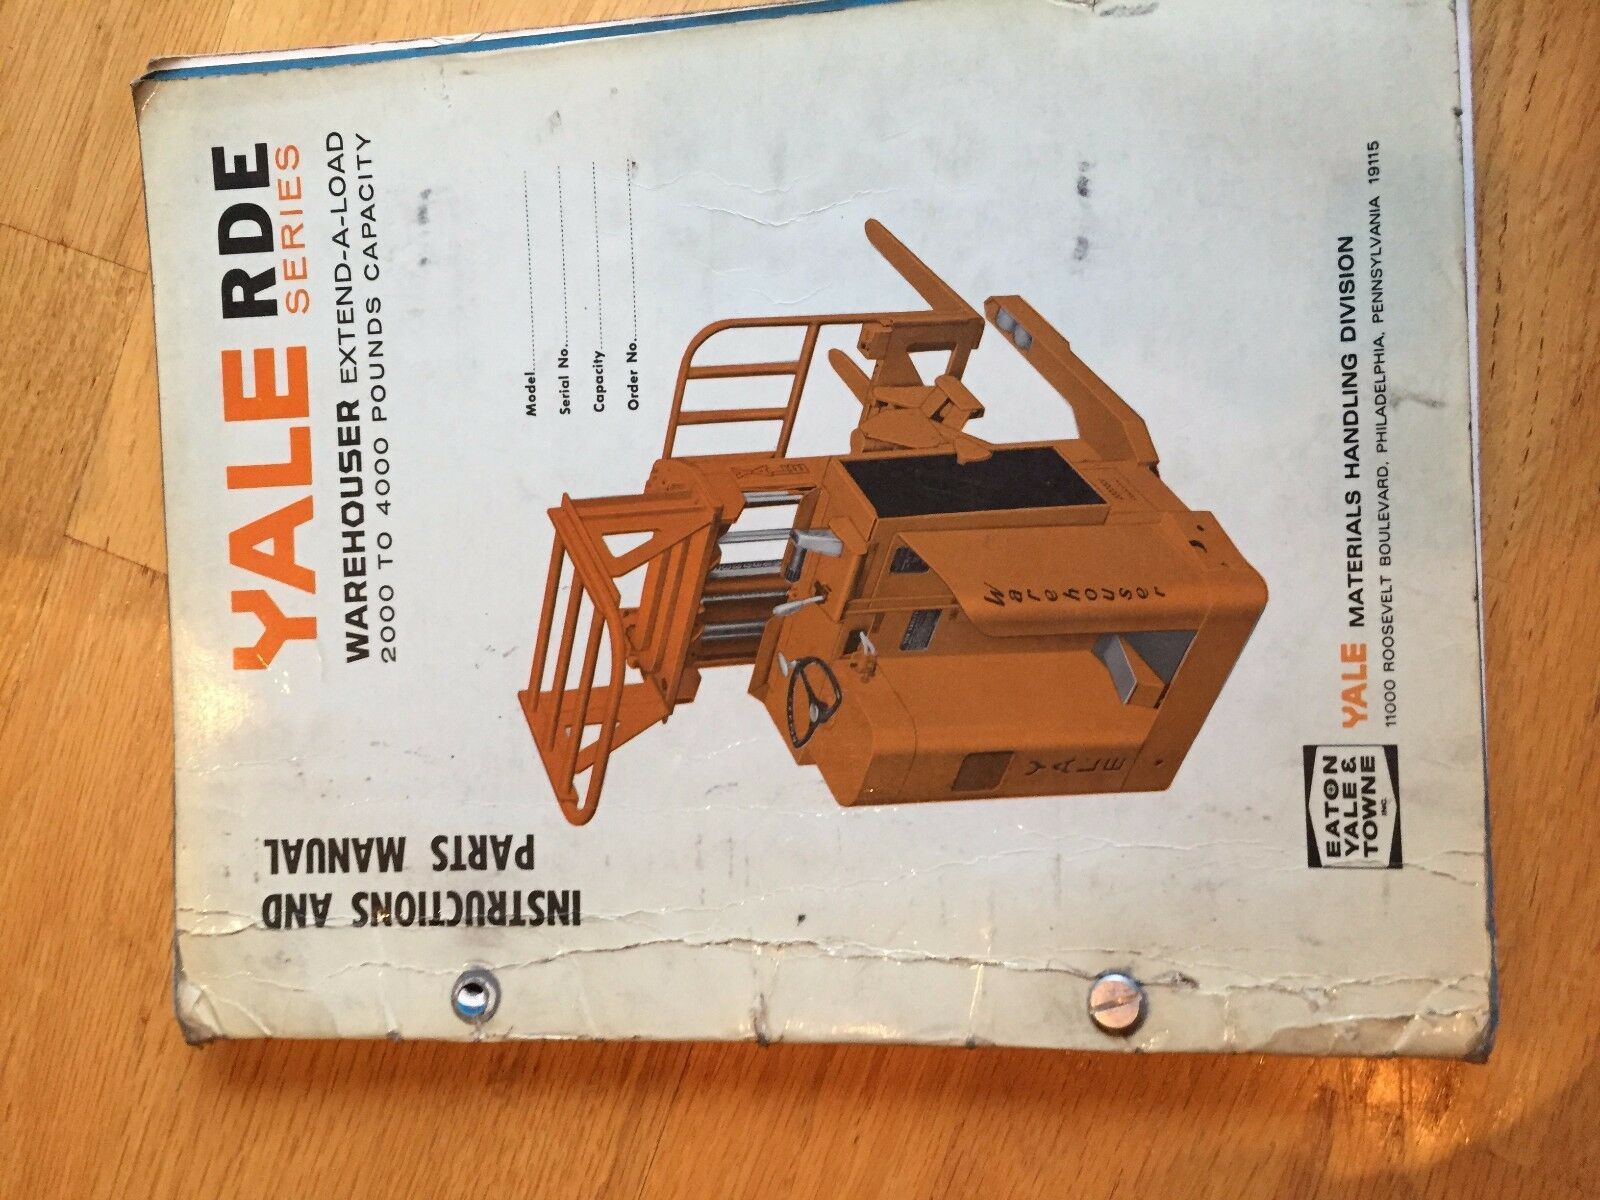 yale lift rde series forklift service manual truck 87 00 picclick rh picclick com Yale Forklifts Parts Manual Yale Owner's Manual